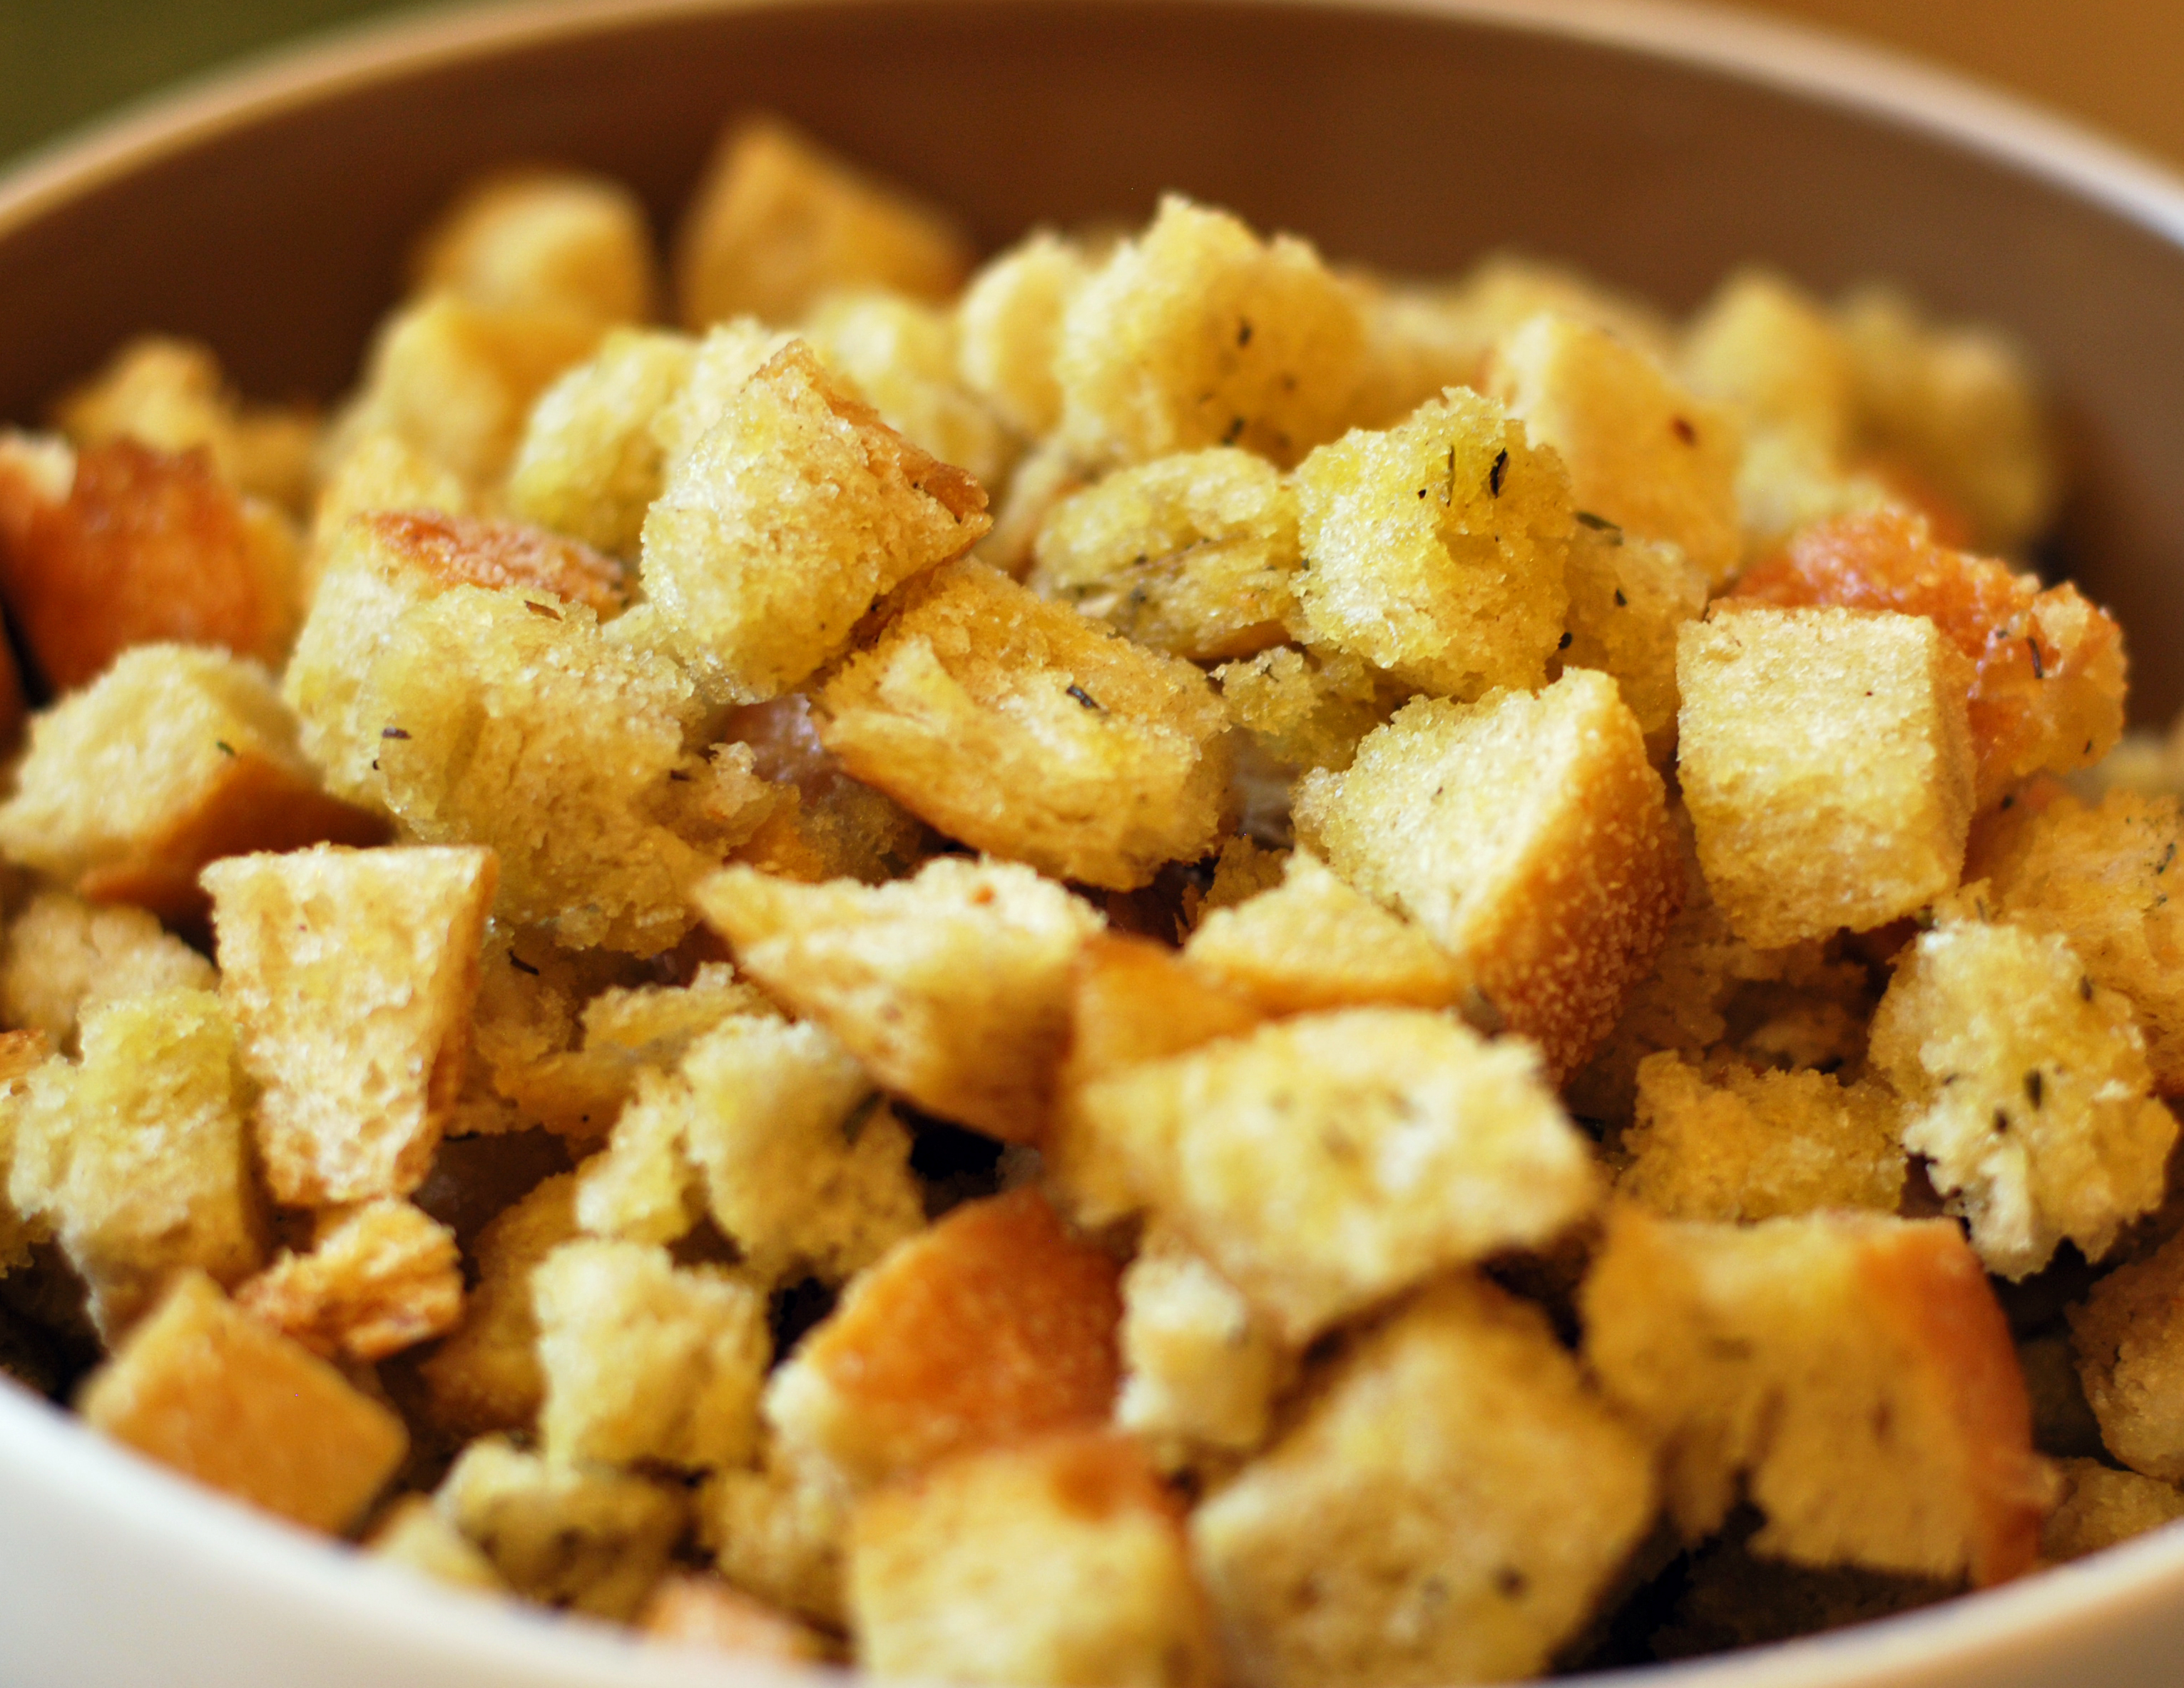 homemade garlic herb homemade garlic herb homemade sourdough croutons ...